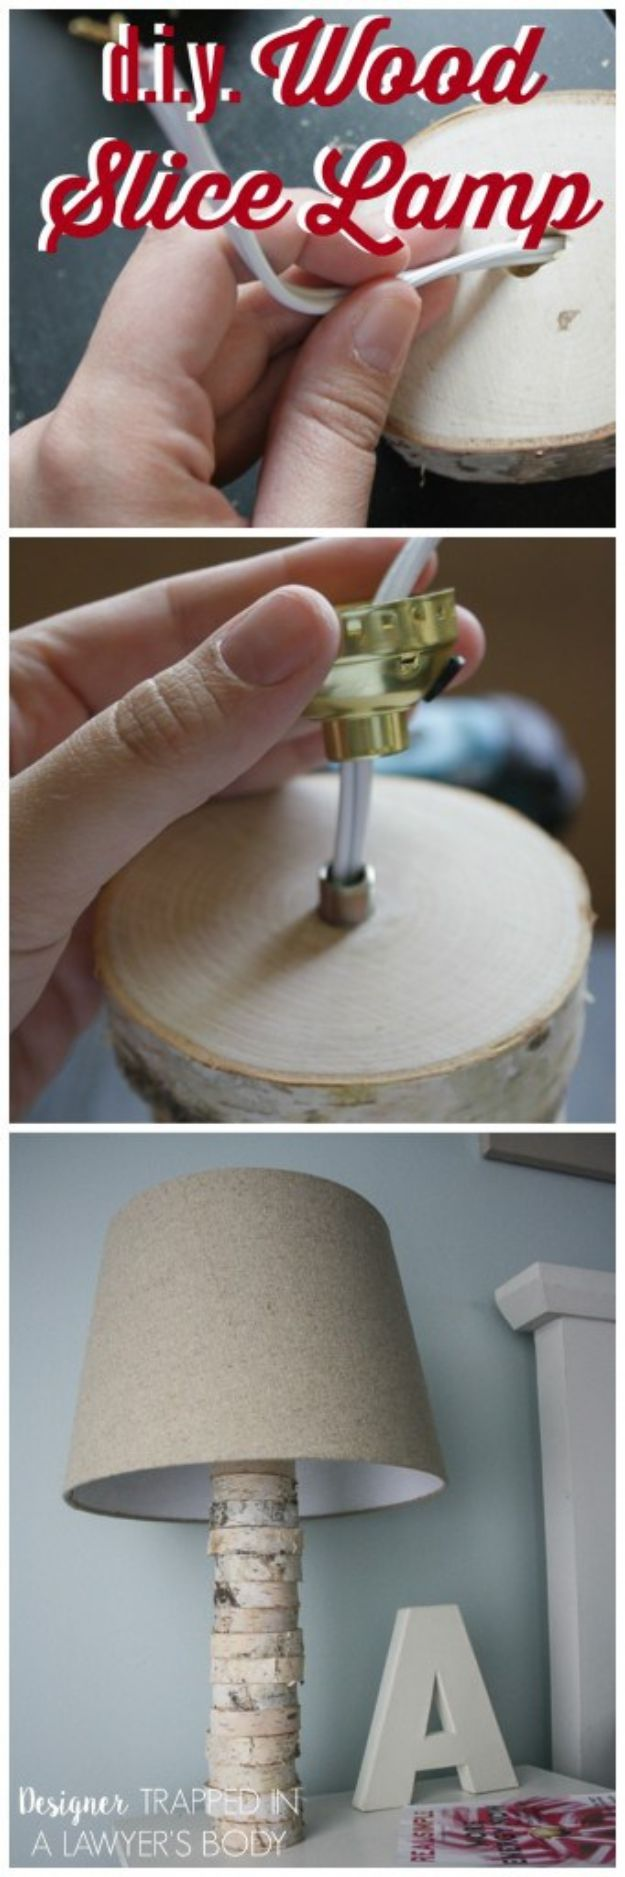 DIY Lighting Ideas and Cool DIY Light Projects for the Home - DIY Stacked Wood Lamp - Easy DIY Ideas for Chandeliers, lights, lamps, awesome pendants and creative hanging fixtures, complete with tutorials with instructions. Cheap do it yourself lighting tutorials for indoor - bedroom, living room, bathroom, kitchen DIY Projects and Crafts for Women and Men http://diyjoy.com/diy-indoor-lighting-ideas